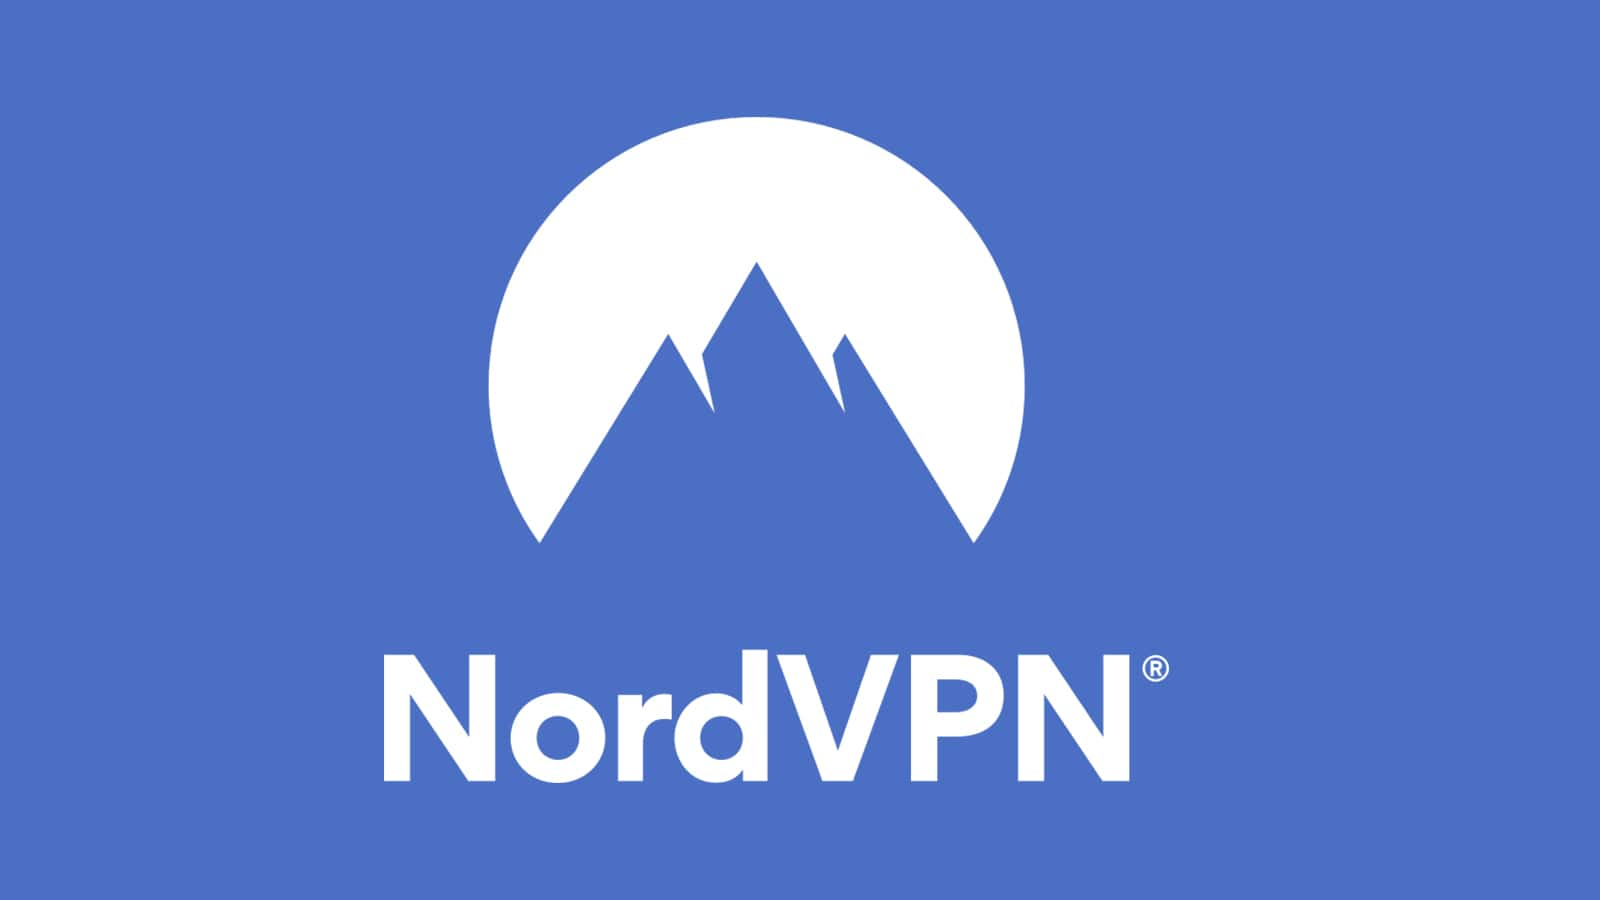 How to Get NordVPN for Free